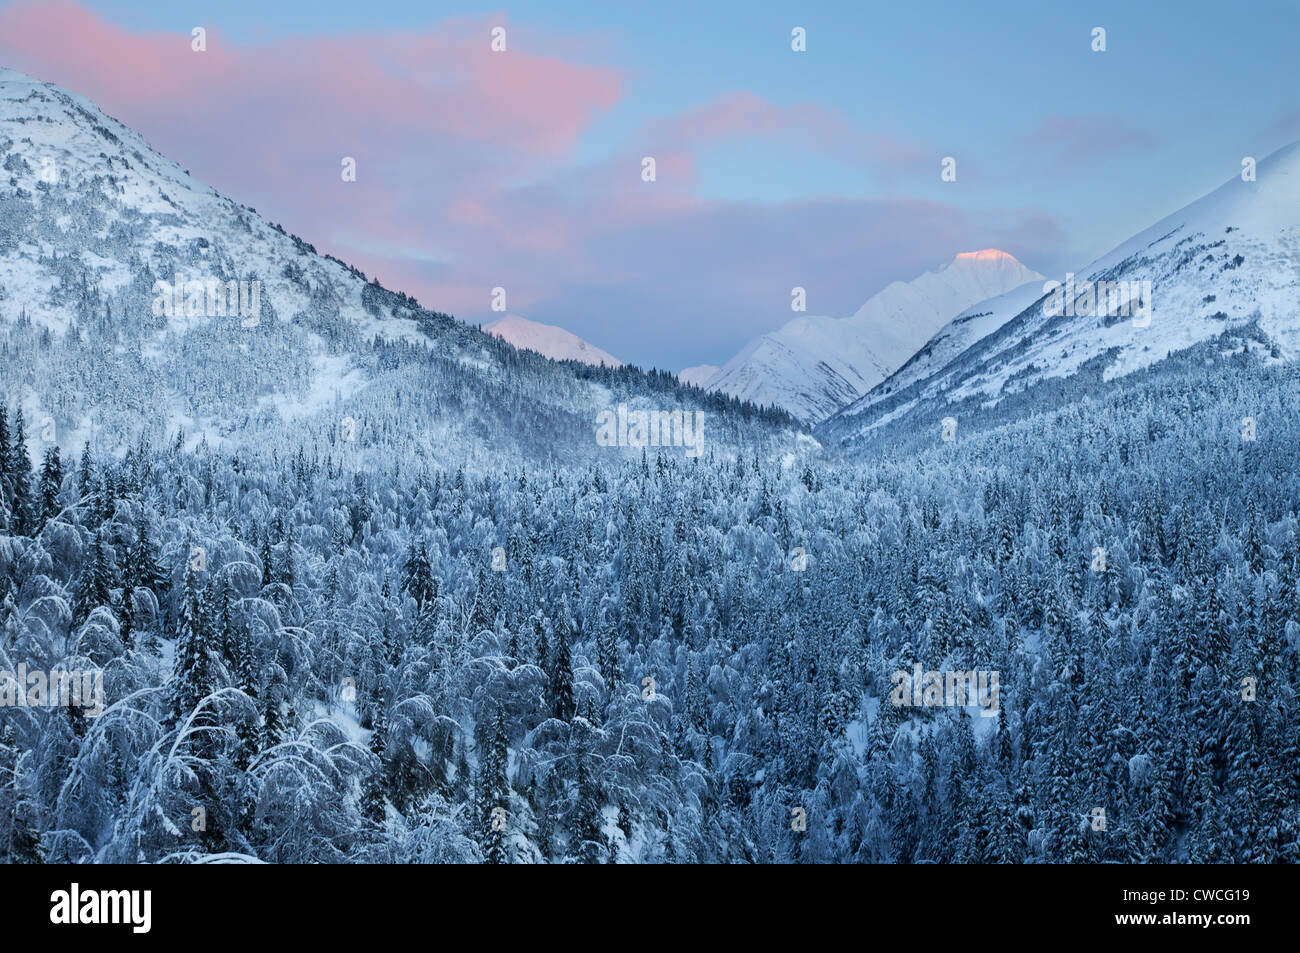 Arbres enneigés, au coucher du soleil, la Forêt Nationale de Chugach Alaska. Photo Stock